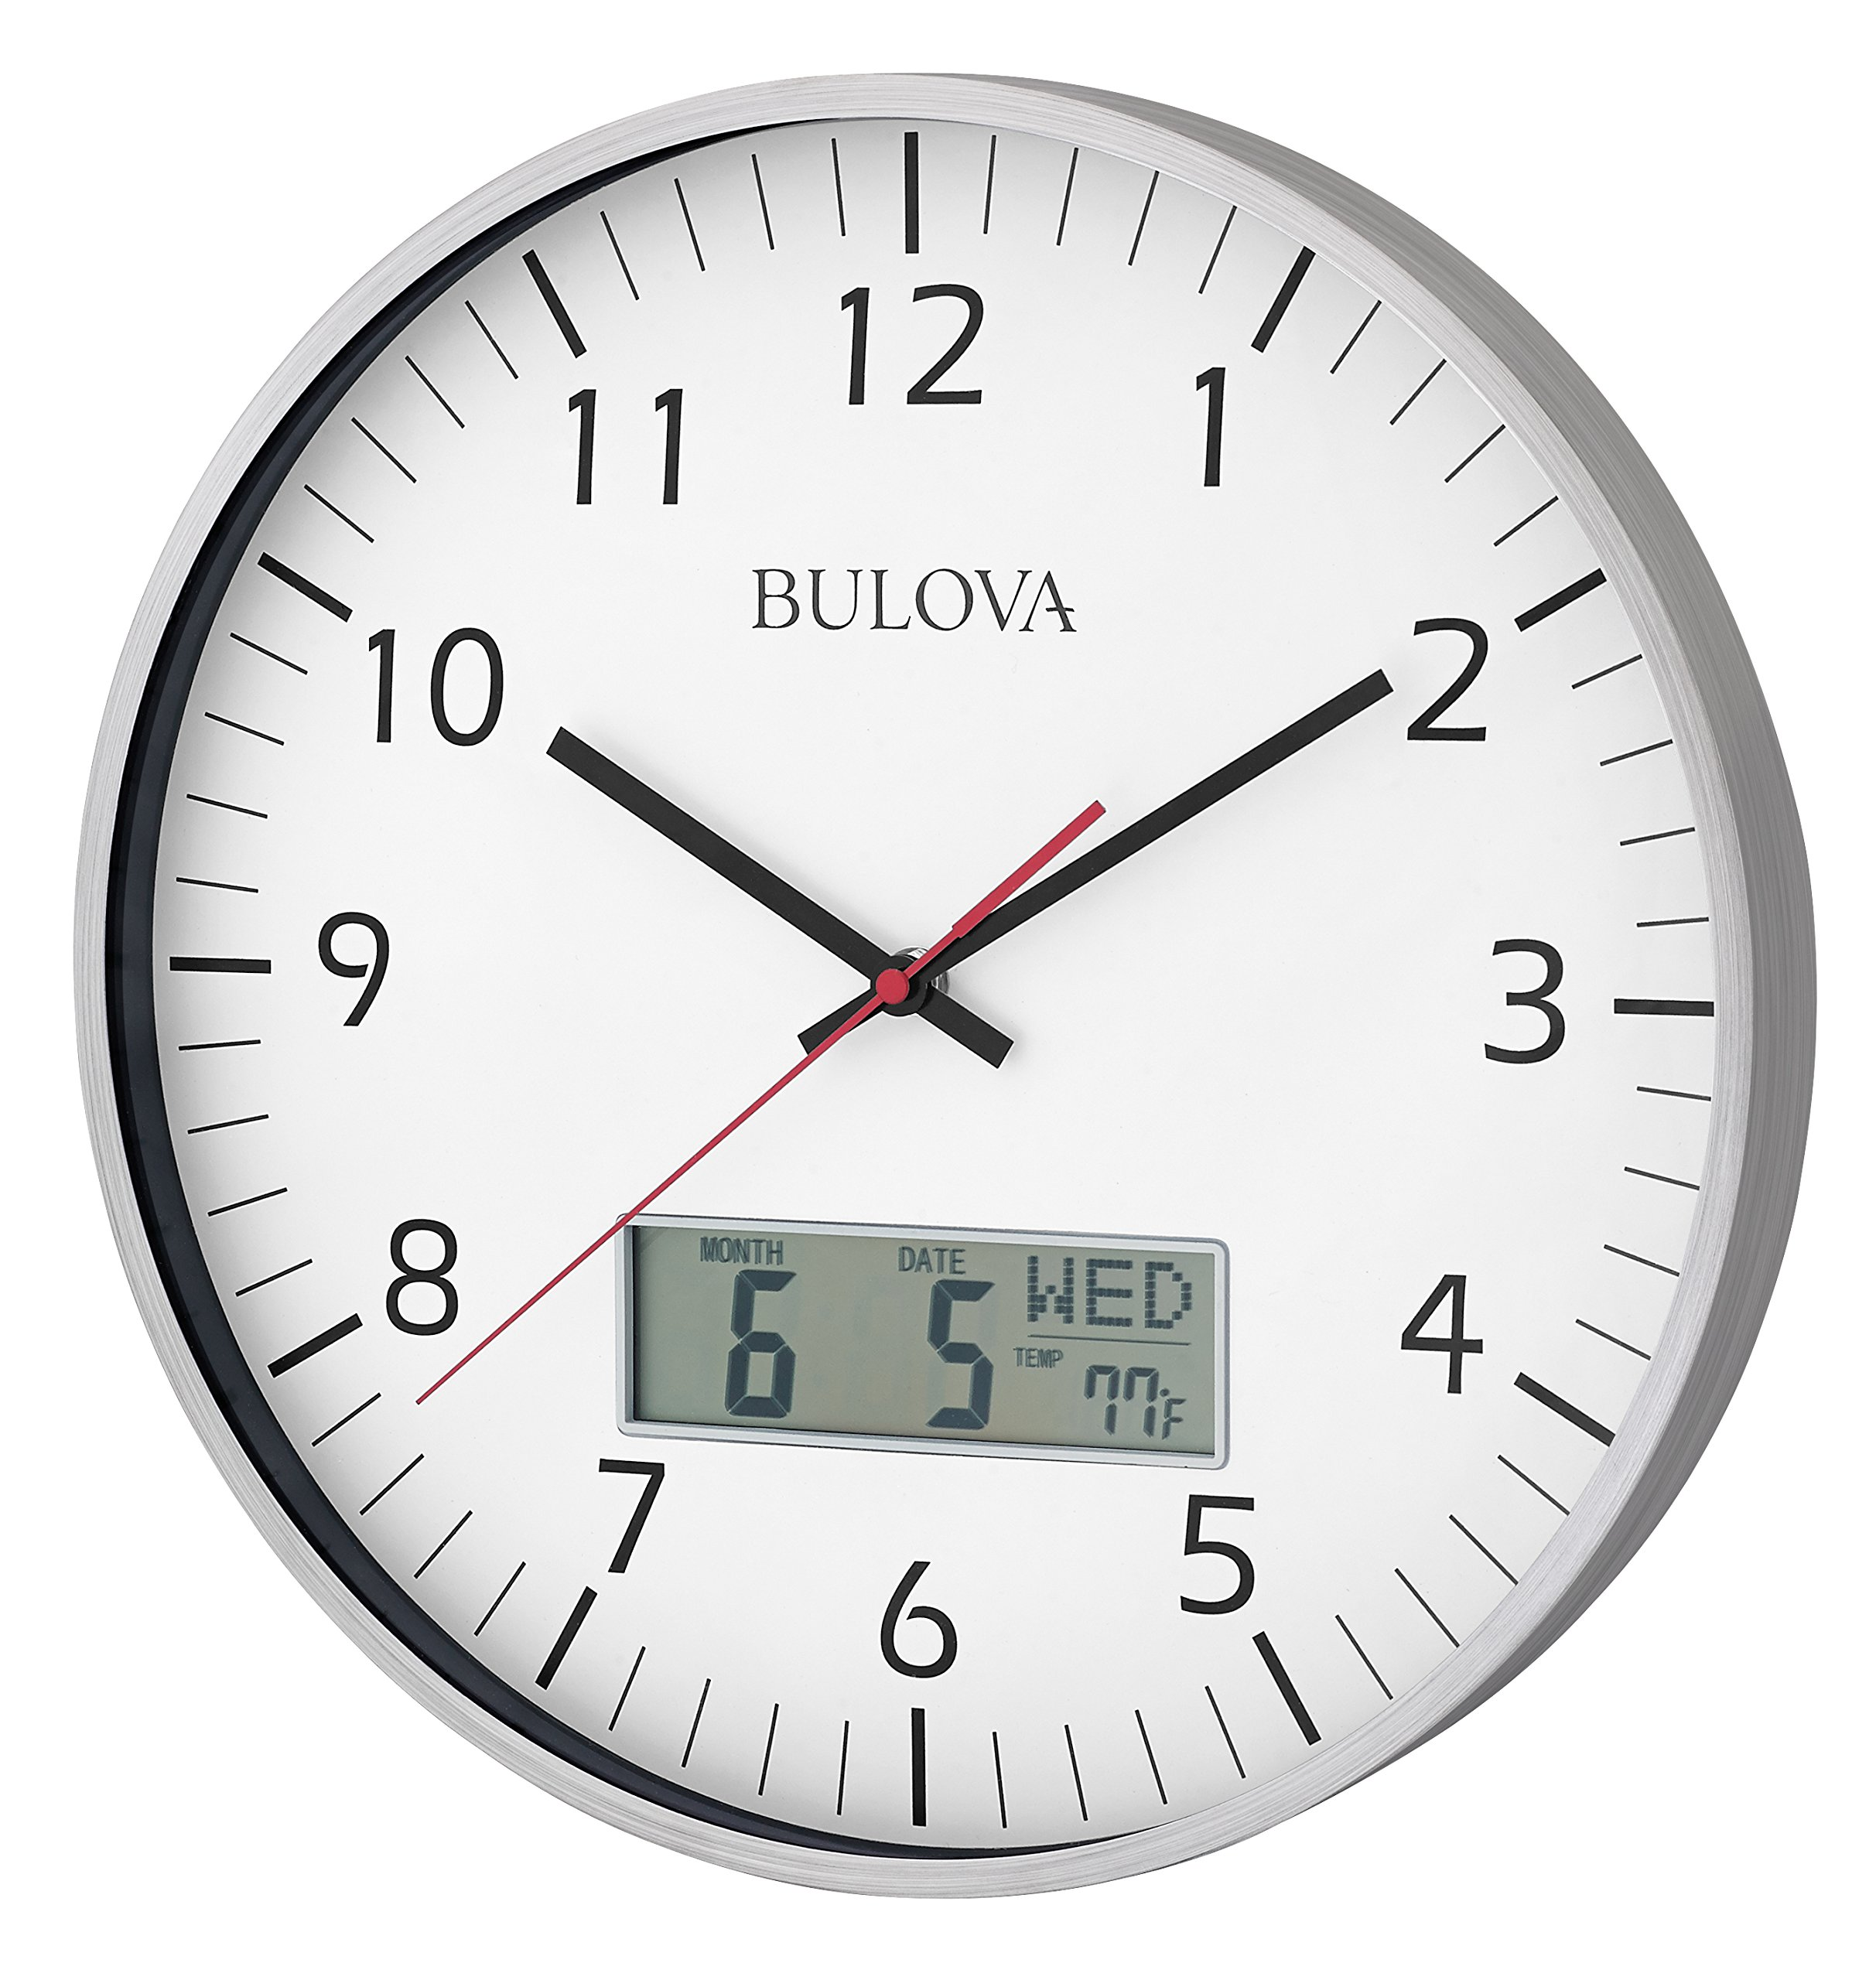 Bulova C4810 Manager Wall Clock, Silver - Silent quartz movement with a read quiet sweep (no ticking) second handle Bright white dial and bold numerals Digital feature displays month/date/day, and fahrenheit or celsius room temperature readouts - wall-clocks, living-room-decor, living-room - 819JwS594WL -